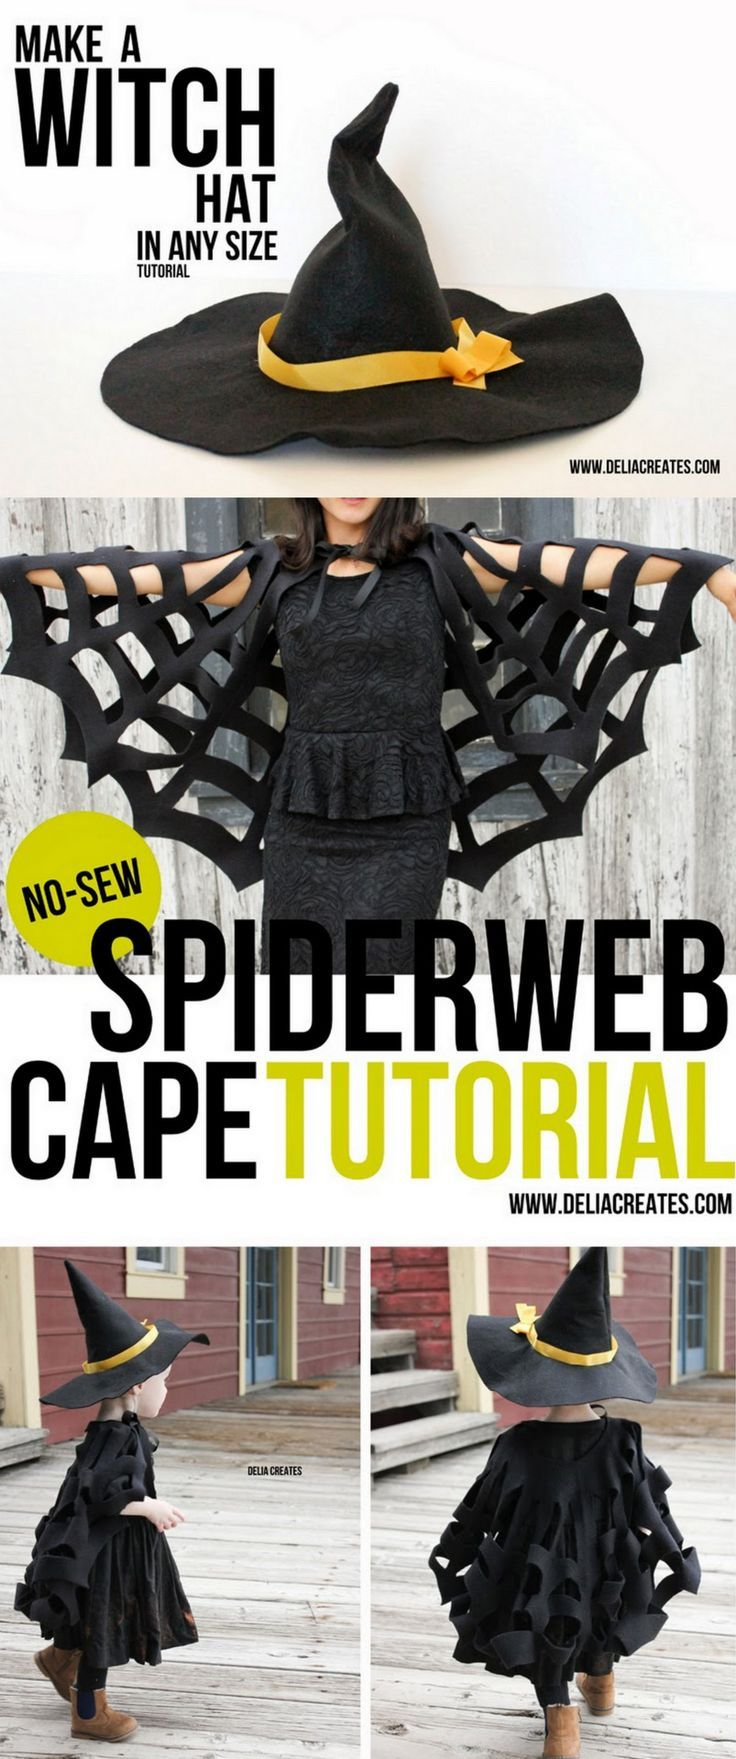 """halloweencrafts: """" DIY Halloween Witch Costume Tutorial from Delia Creates. Make a DIY Witch Costume that includes a DIY Spiderweb Cape and a DIY Hat. •  DIY Witch Hat Tutorial here. This is made from..."""